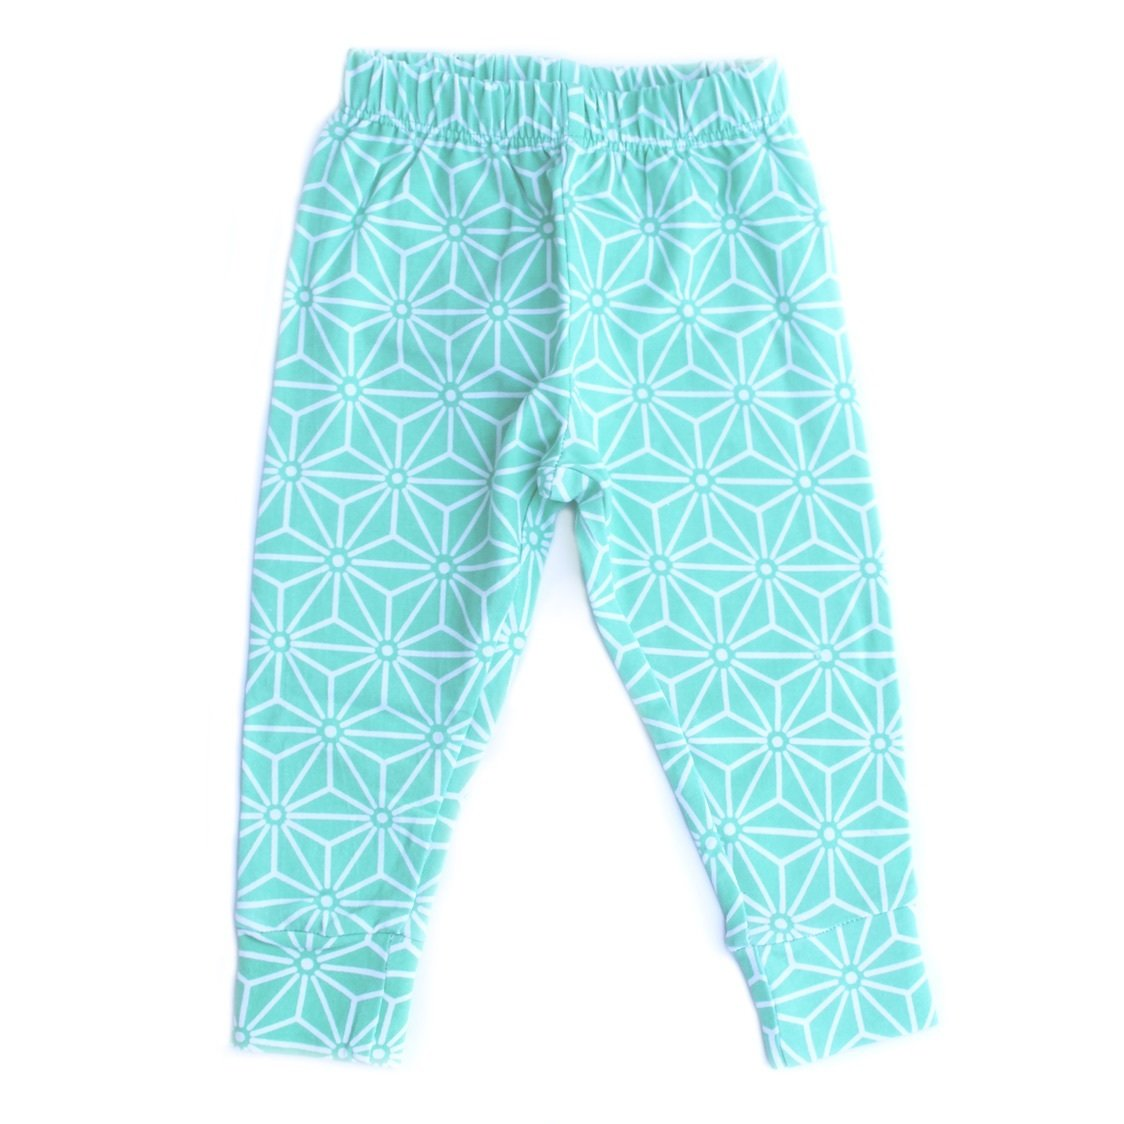 Lennie&co Mint Green leggings